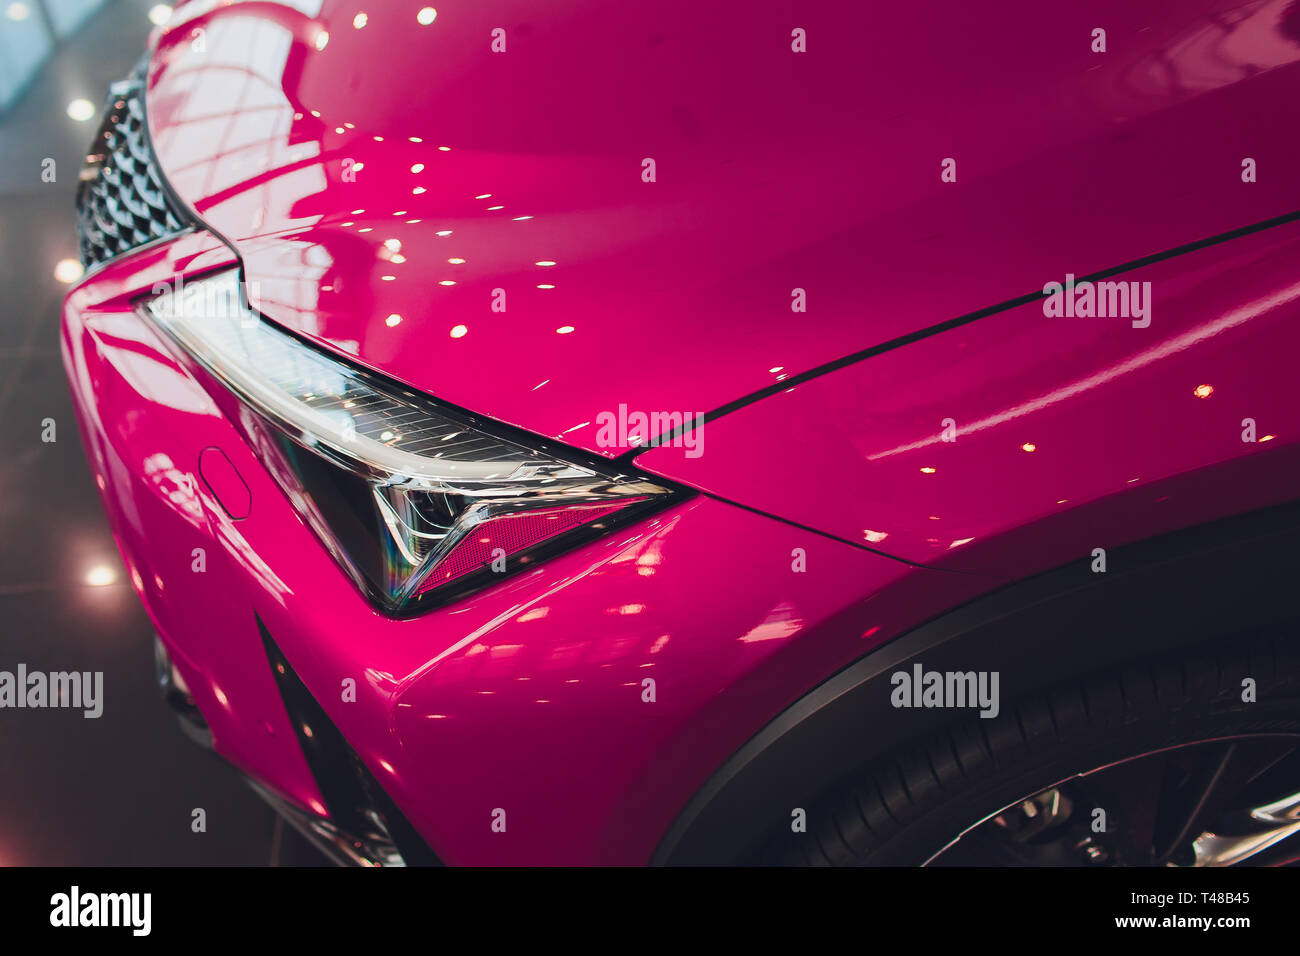 Close Up Shot Headlight In Luxury Pink Car Background Modern And